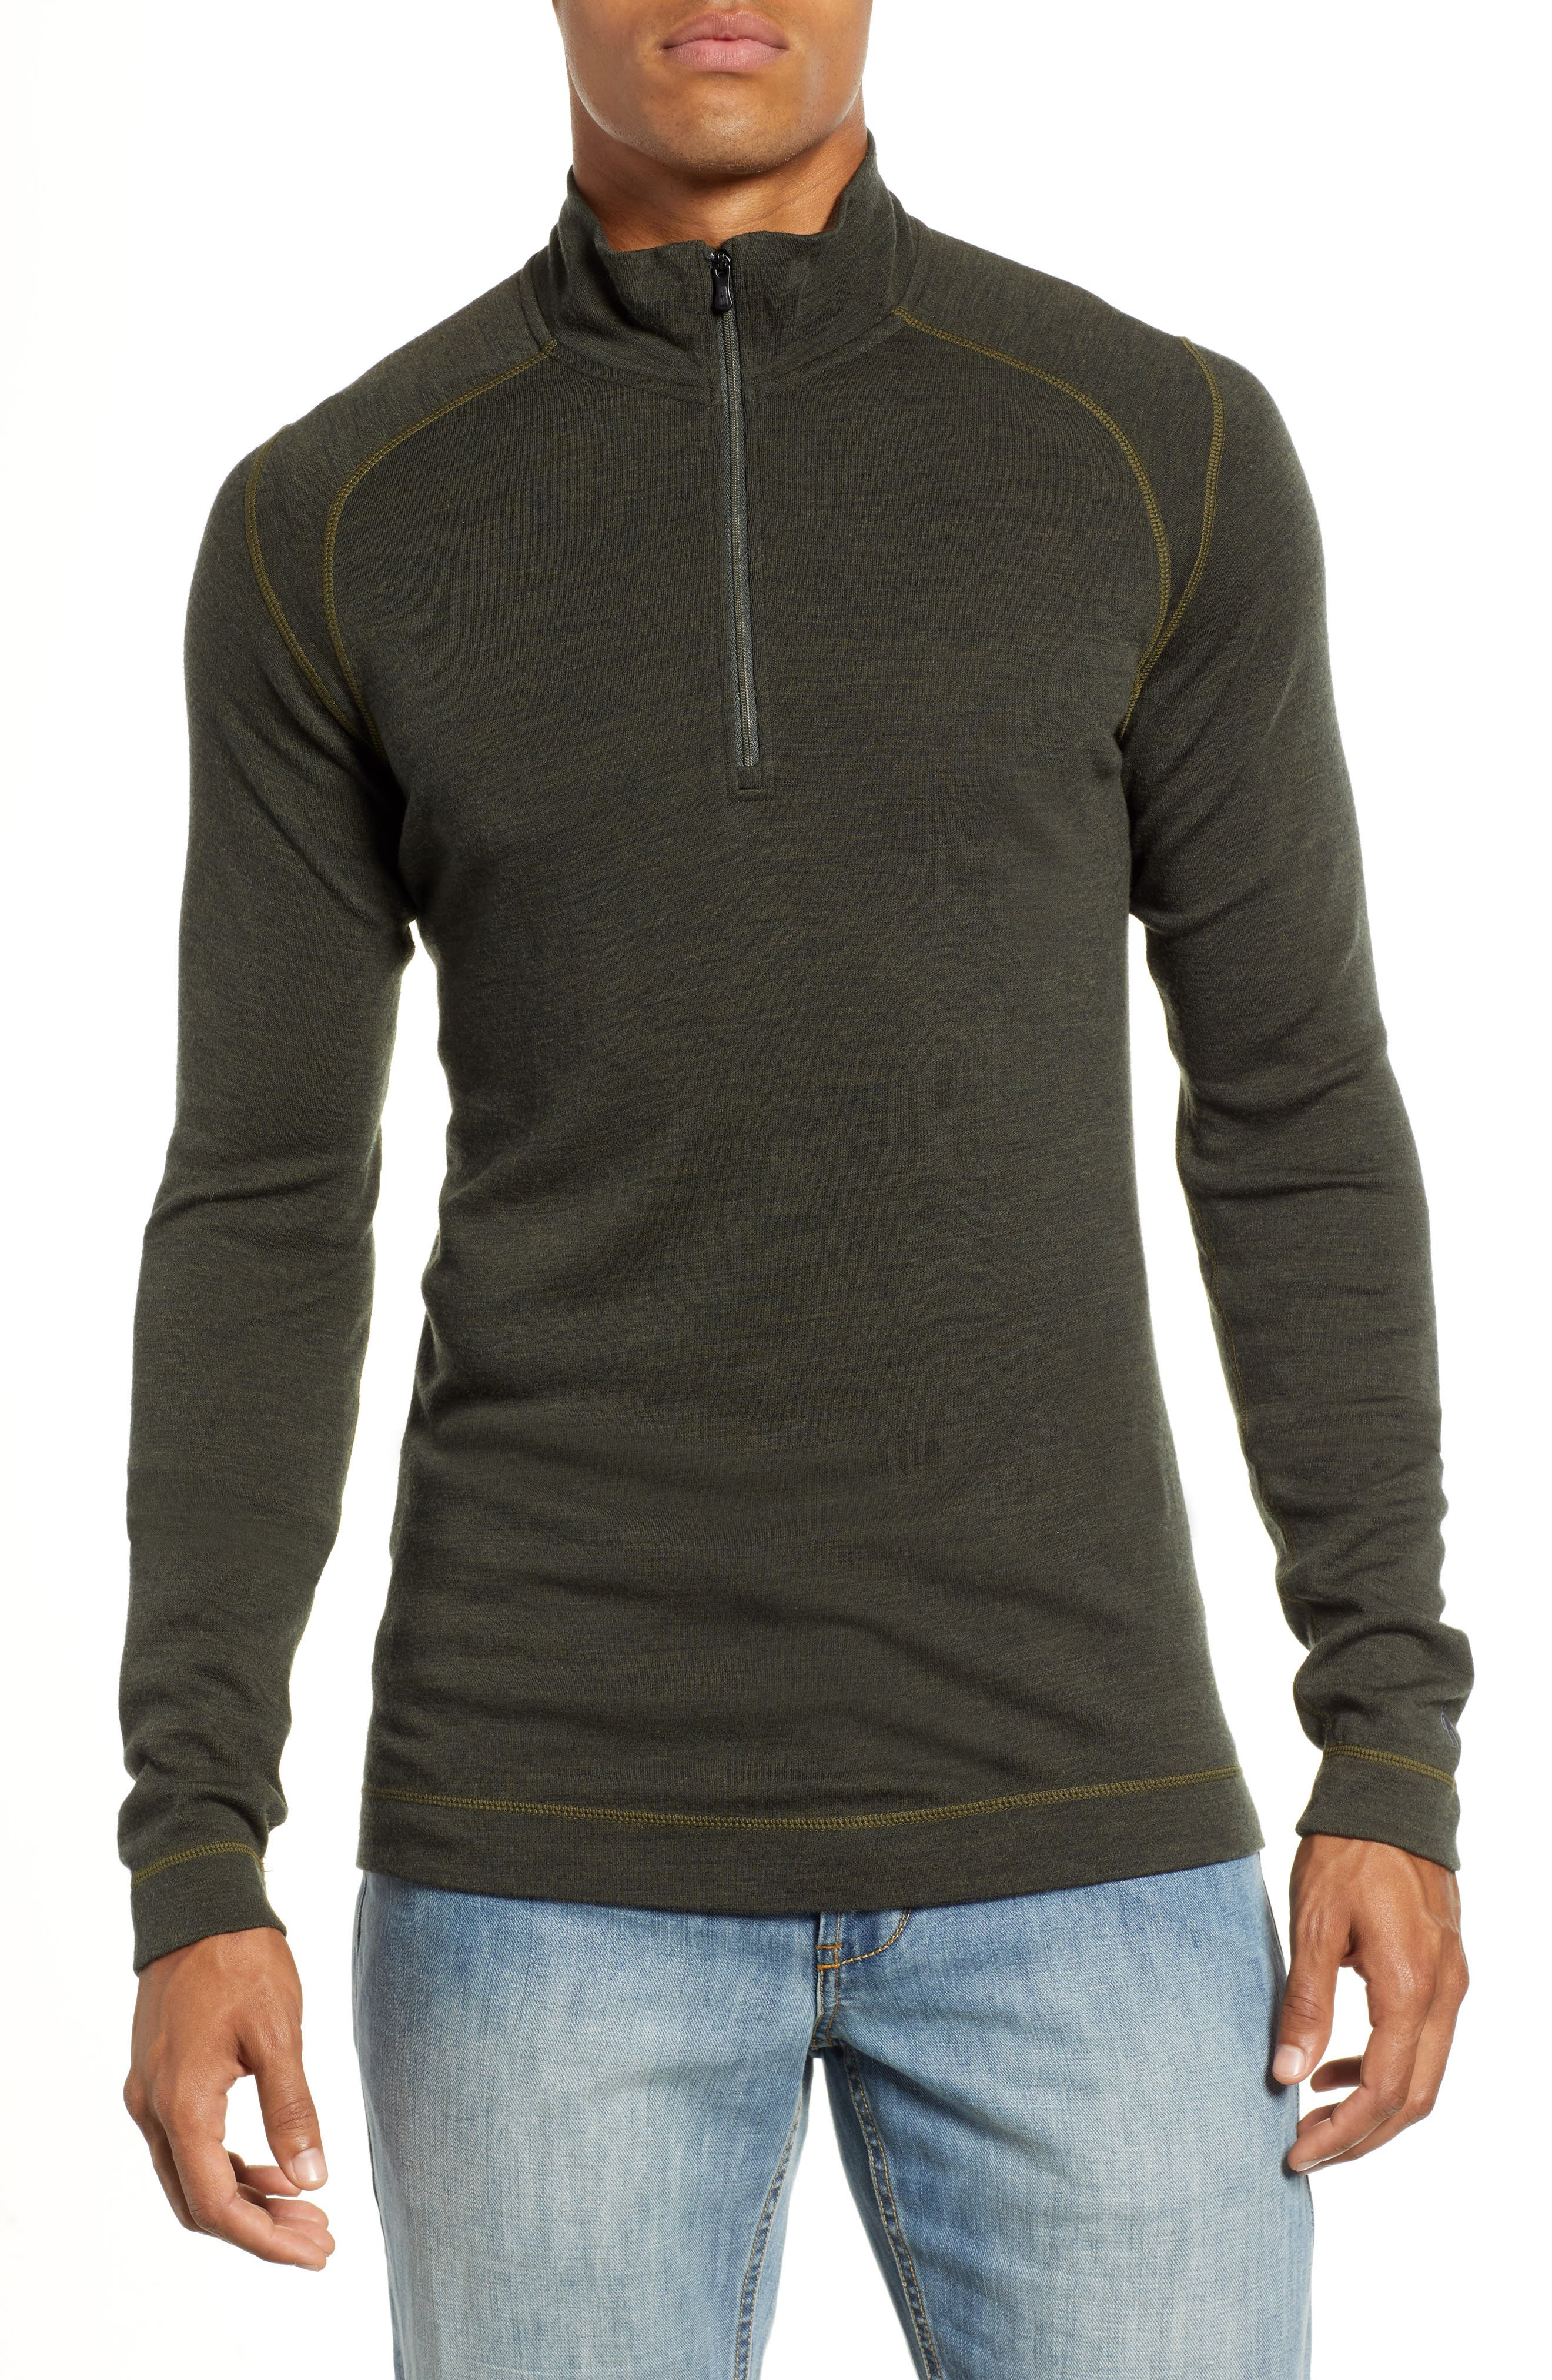 SMARTWOOL, Merino 250 Base Layer Quarter Zip Pullover, Main thumbnail 1, color, OLIVE HEATHER